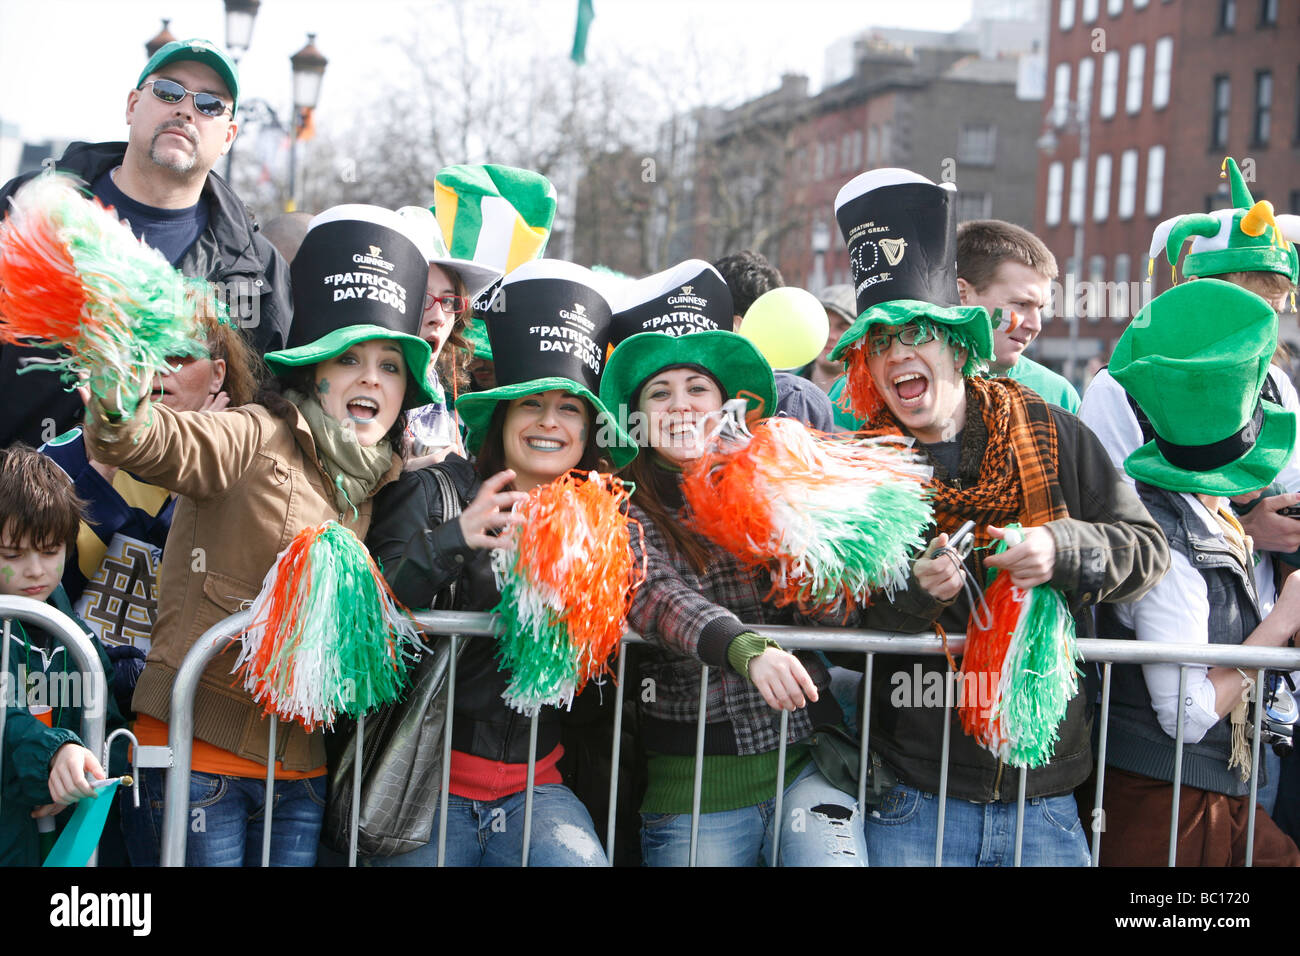 Onlookers at the St Patricks Day parade held every St Patricks Day (17th March) in Irish cities and all around the - Stock Image